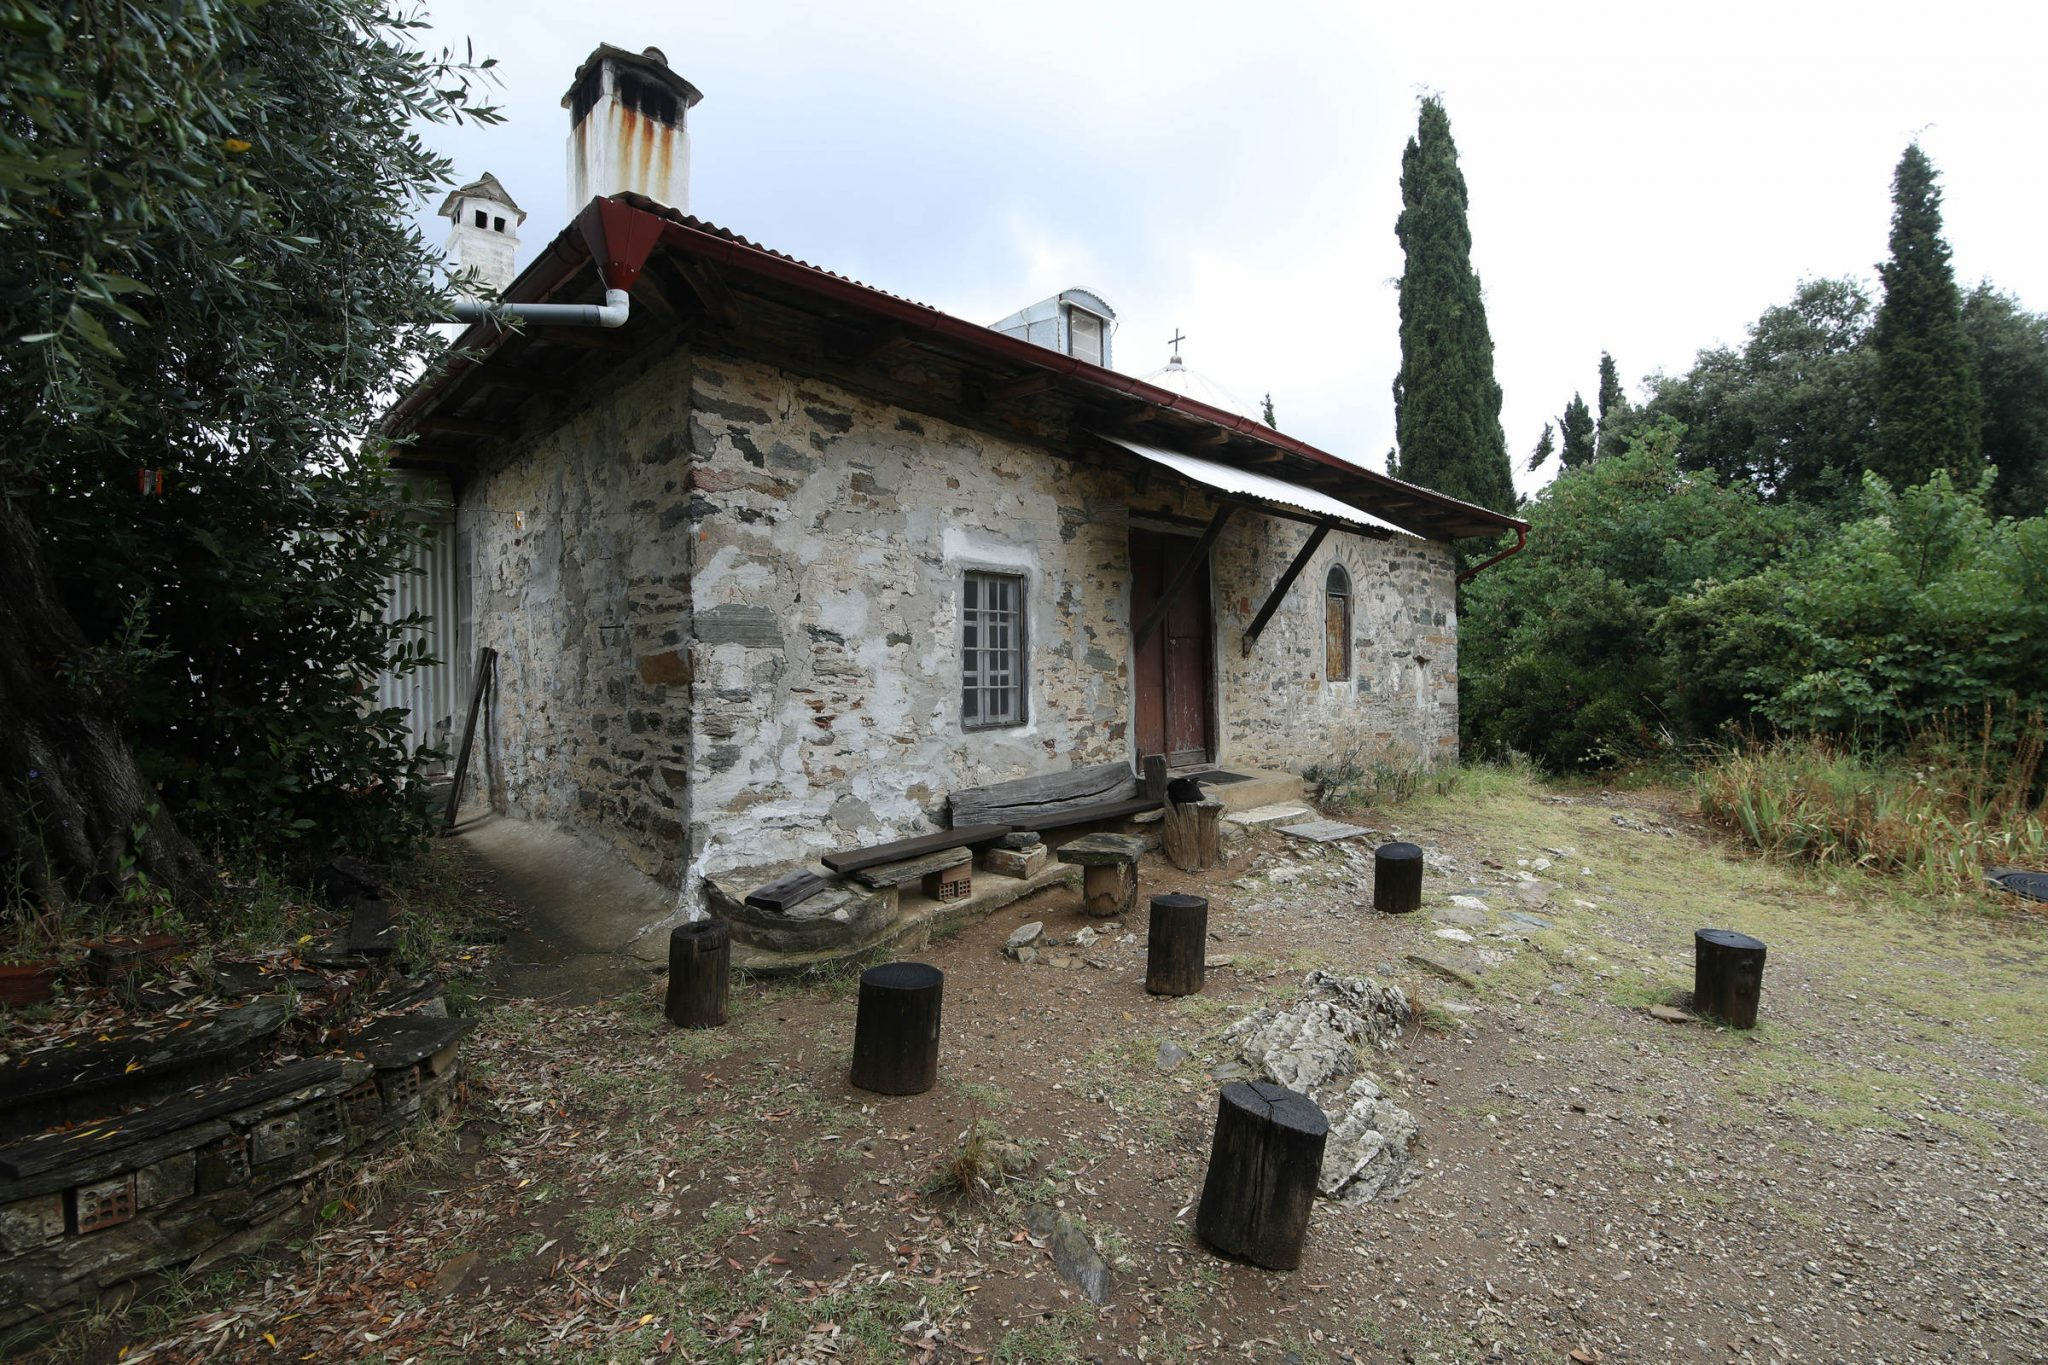 Paisios of Mount Athos' cell - archontariki, front view